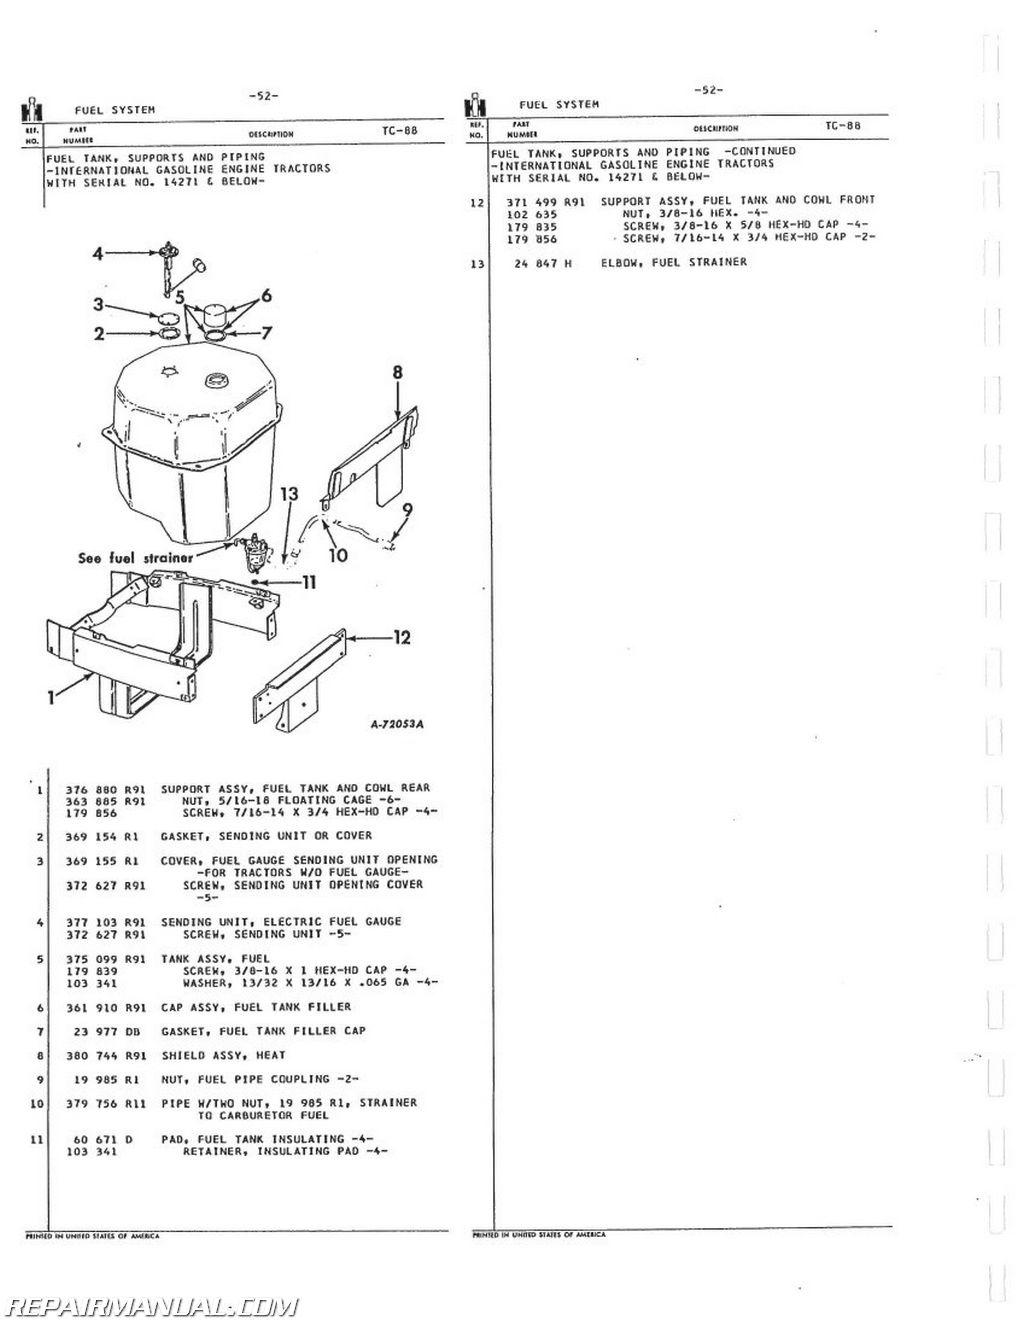 farmall 460 tractor wiring diagram 504 farmall gas wiring diagram farmall 504 water pump farmall 504 tractor wiring diagram